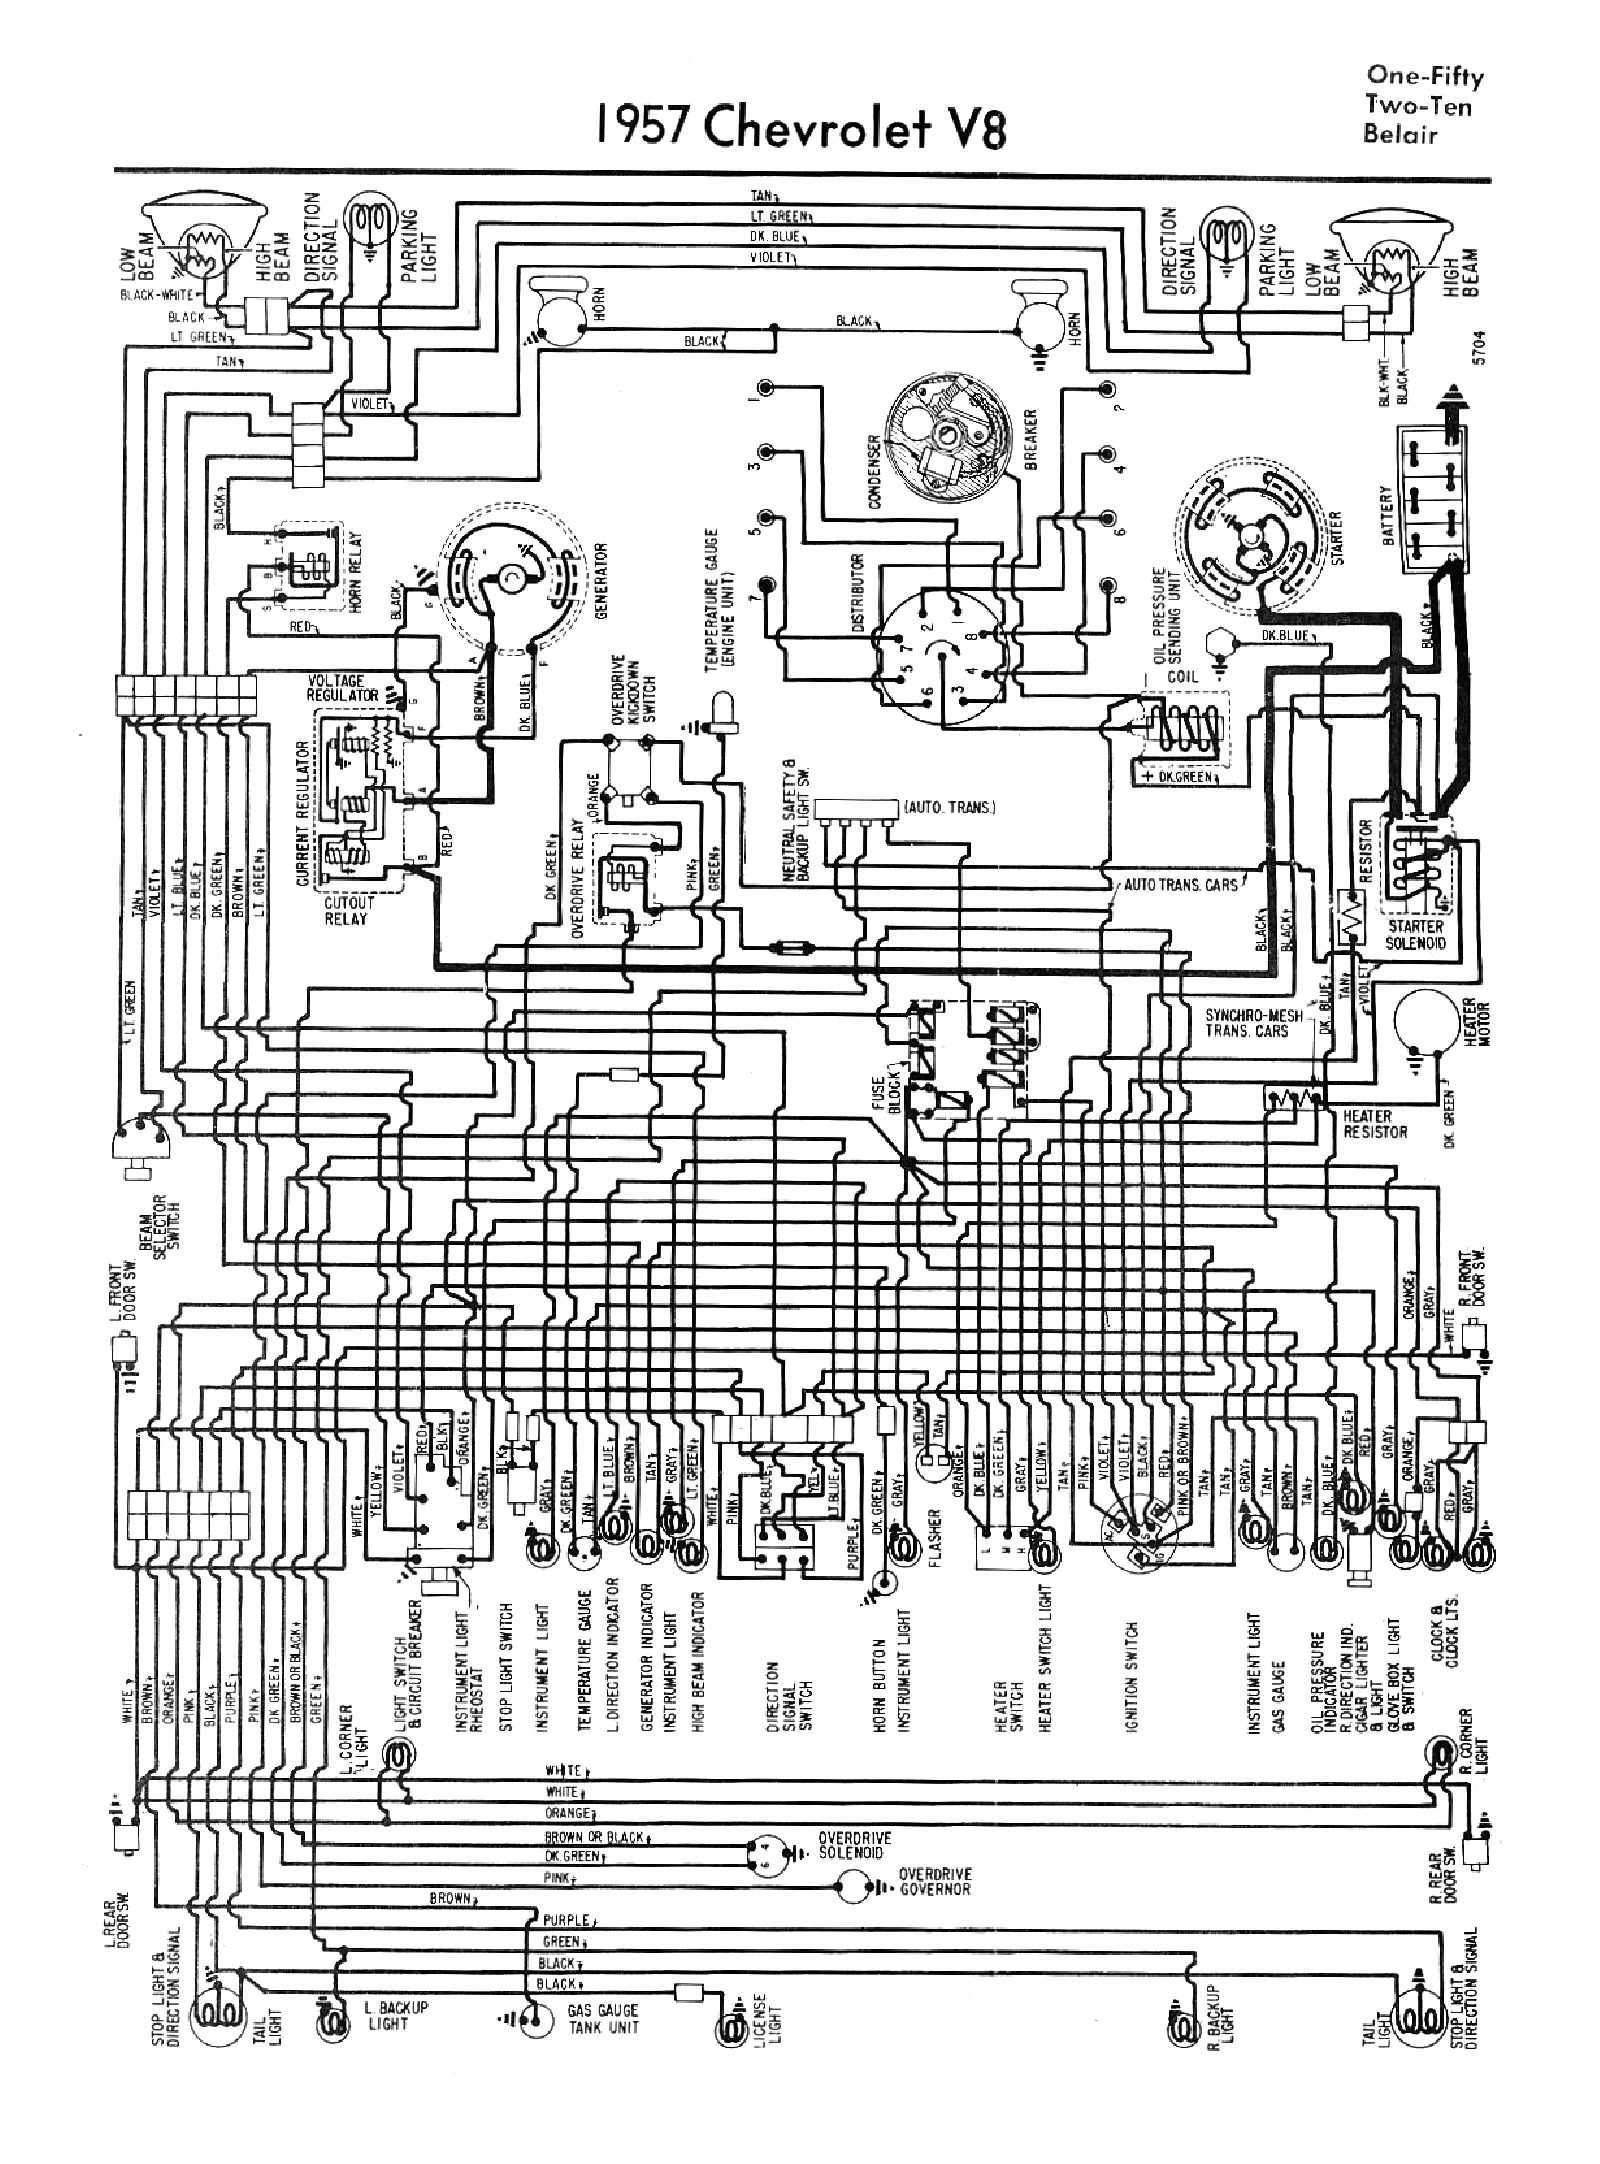 1977 corvette wiring diagram images 1977 corvette wiring diagram 1977 corvette wiring diagram car pictures